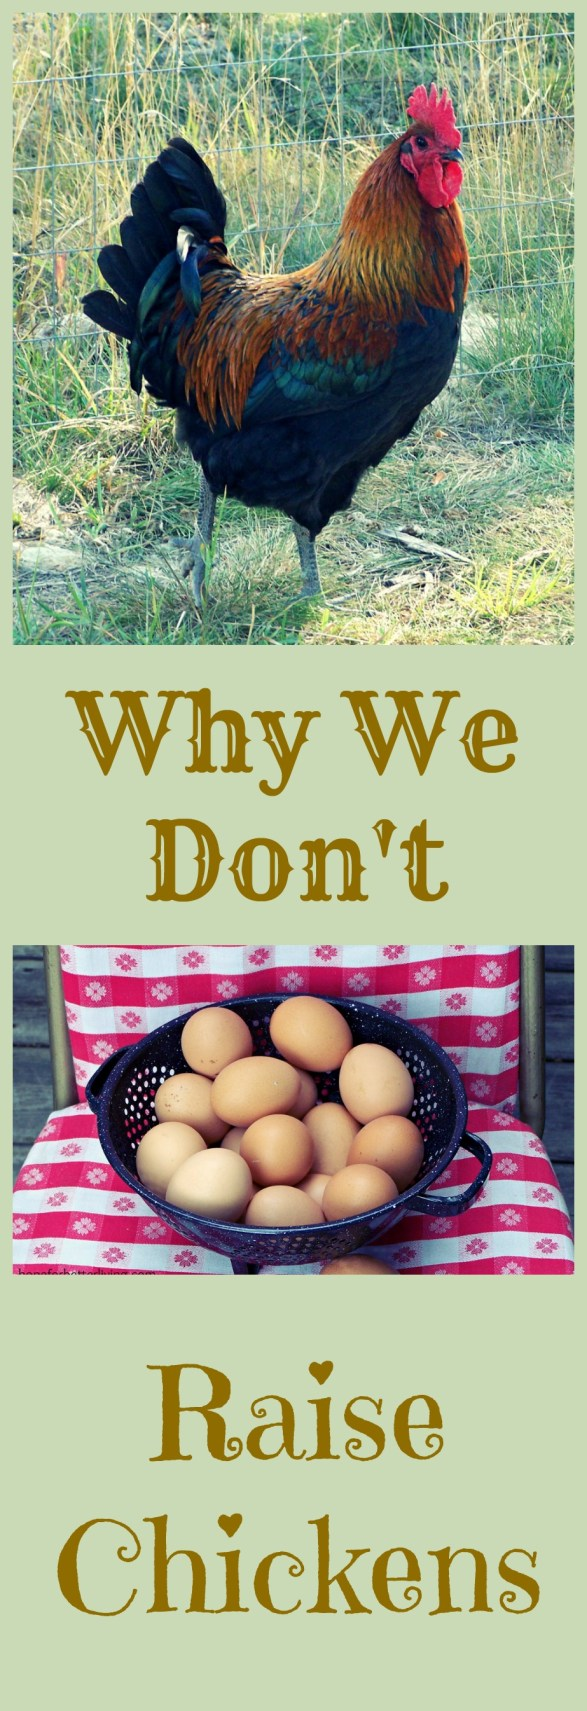 Chickens are the going rage, but here's a few reasons why we prefer OTHER poultry!